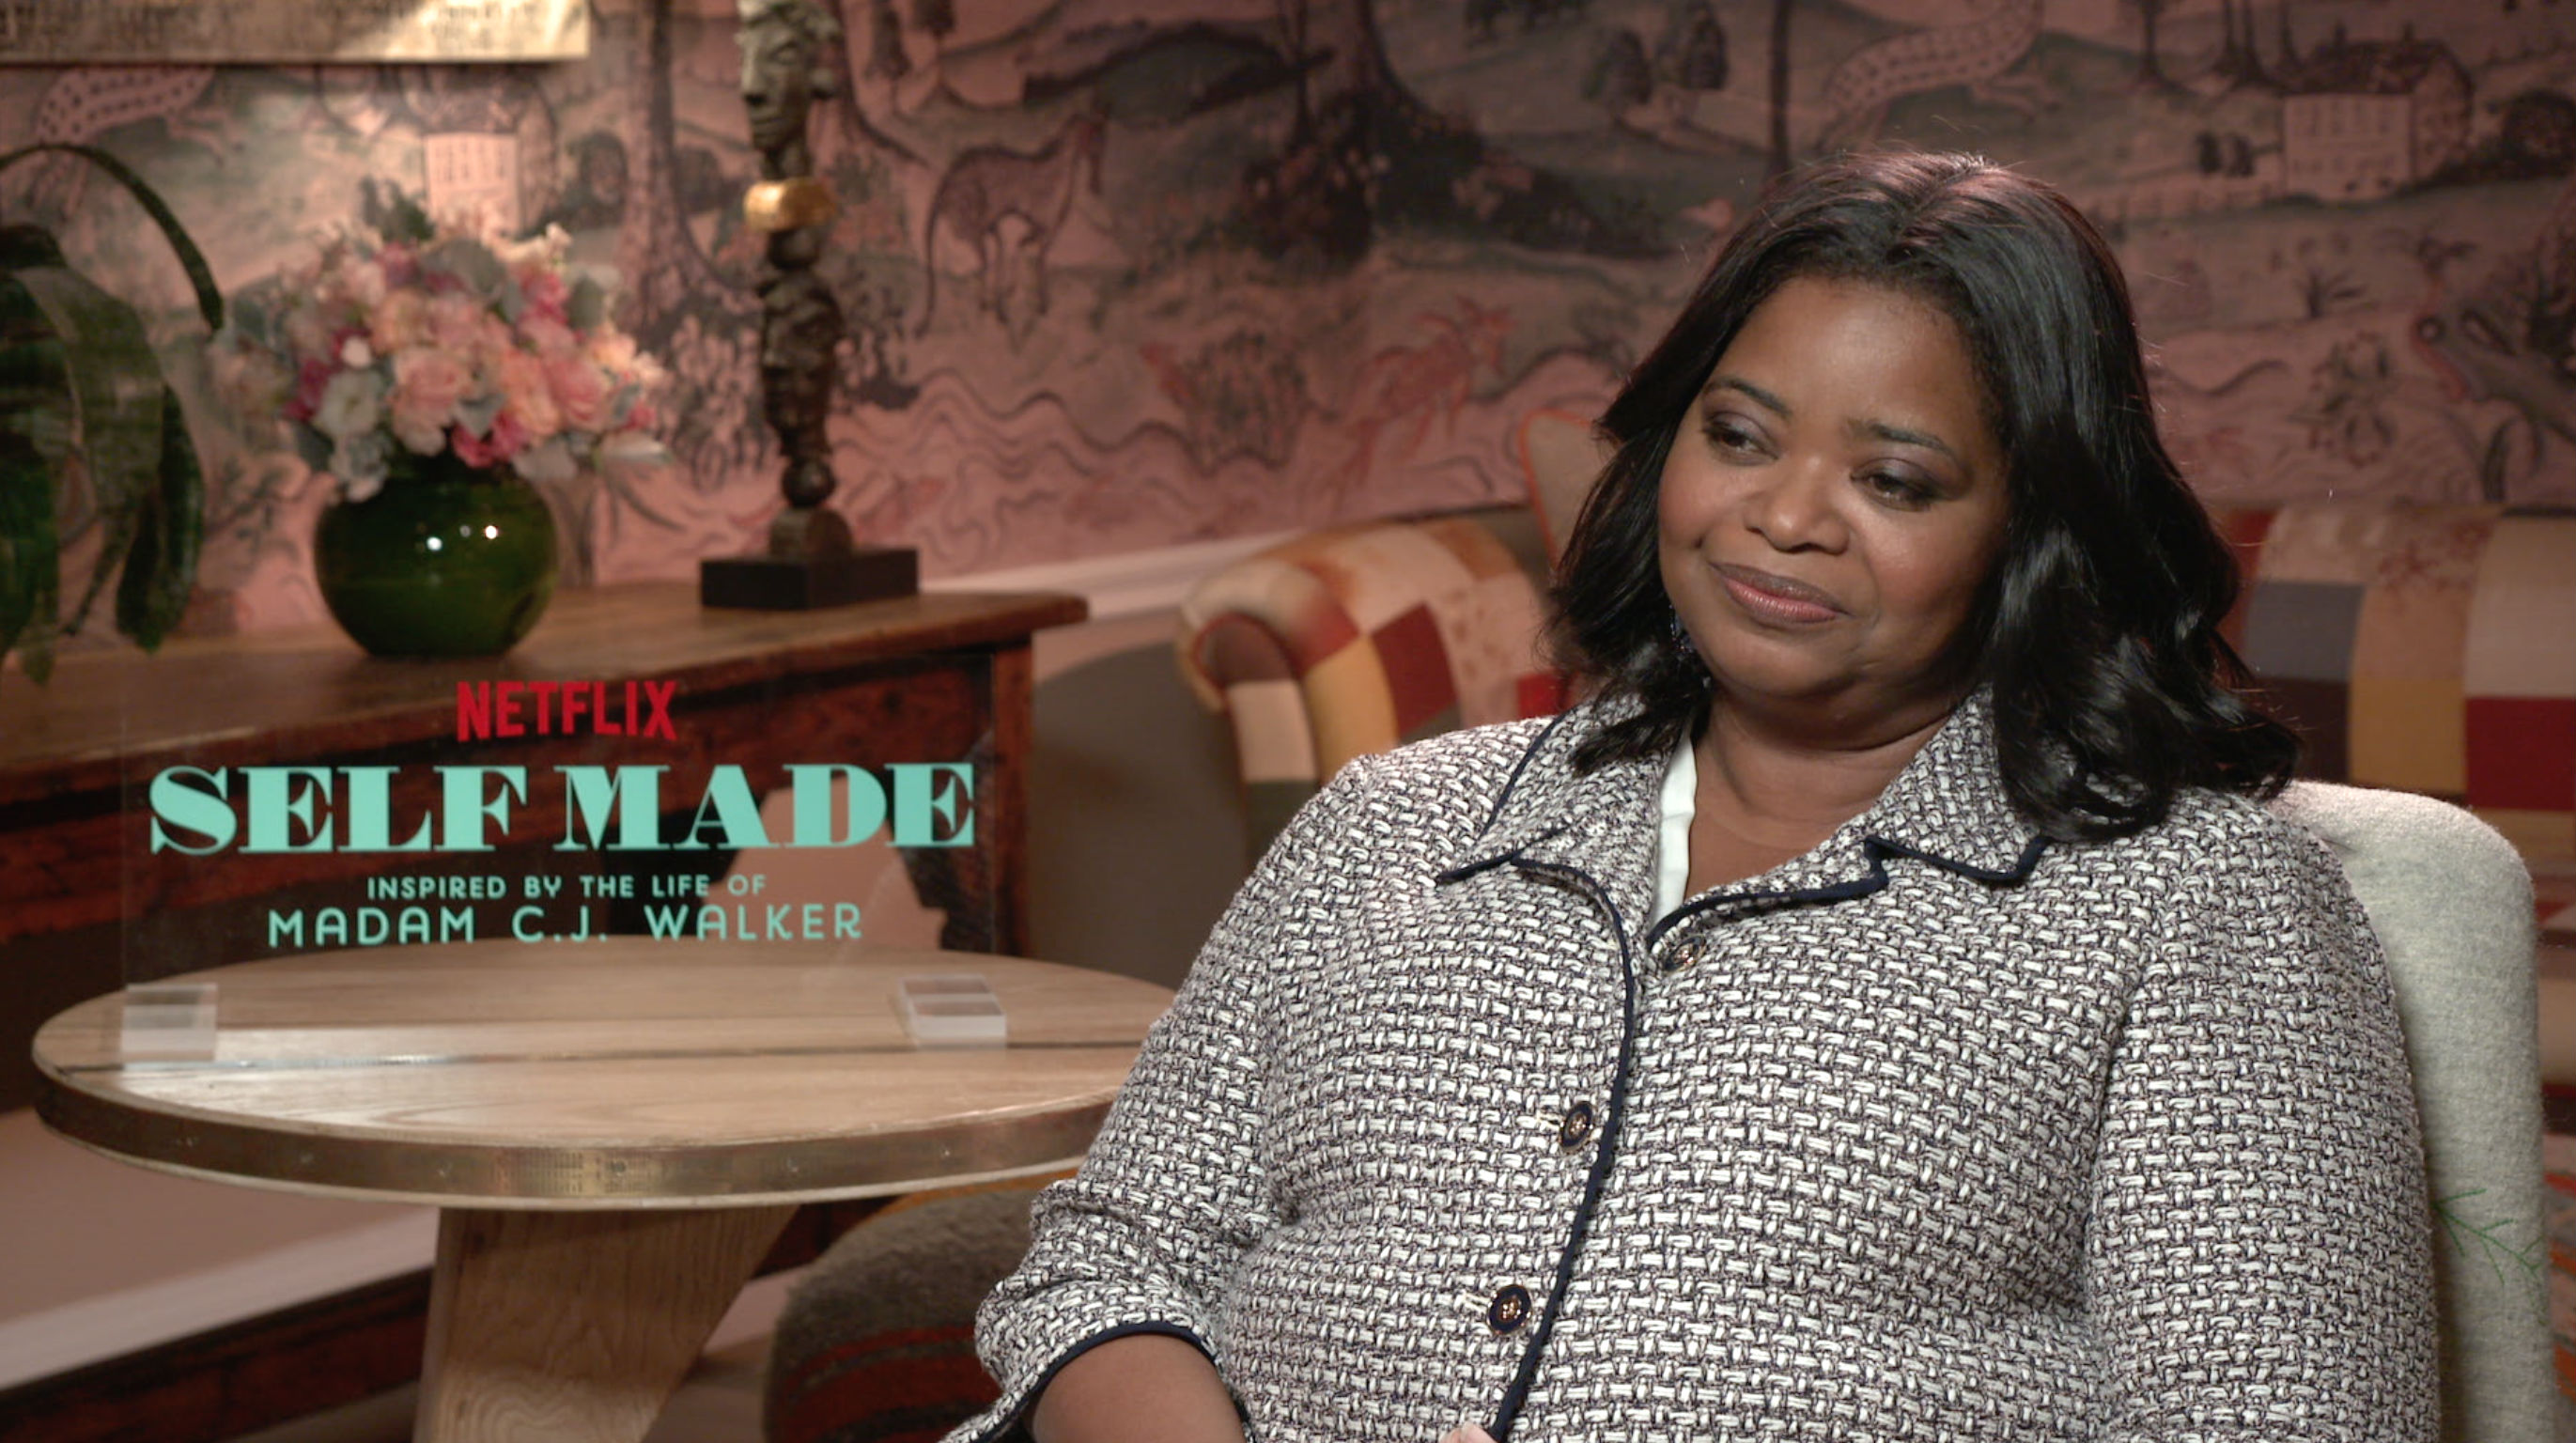 Exclusive Oscar Winner Octavia Spencer Talks Self Made Inspired By The Life Of Madam C J